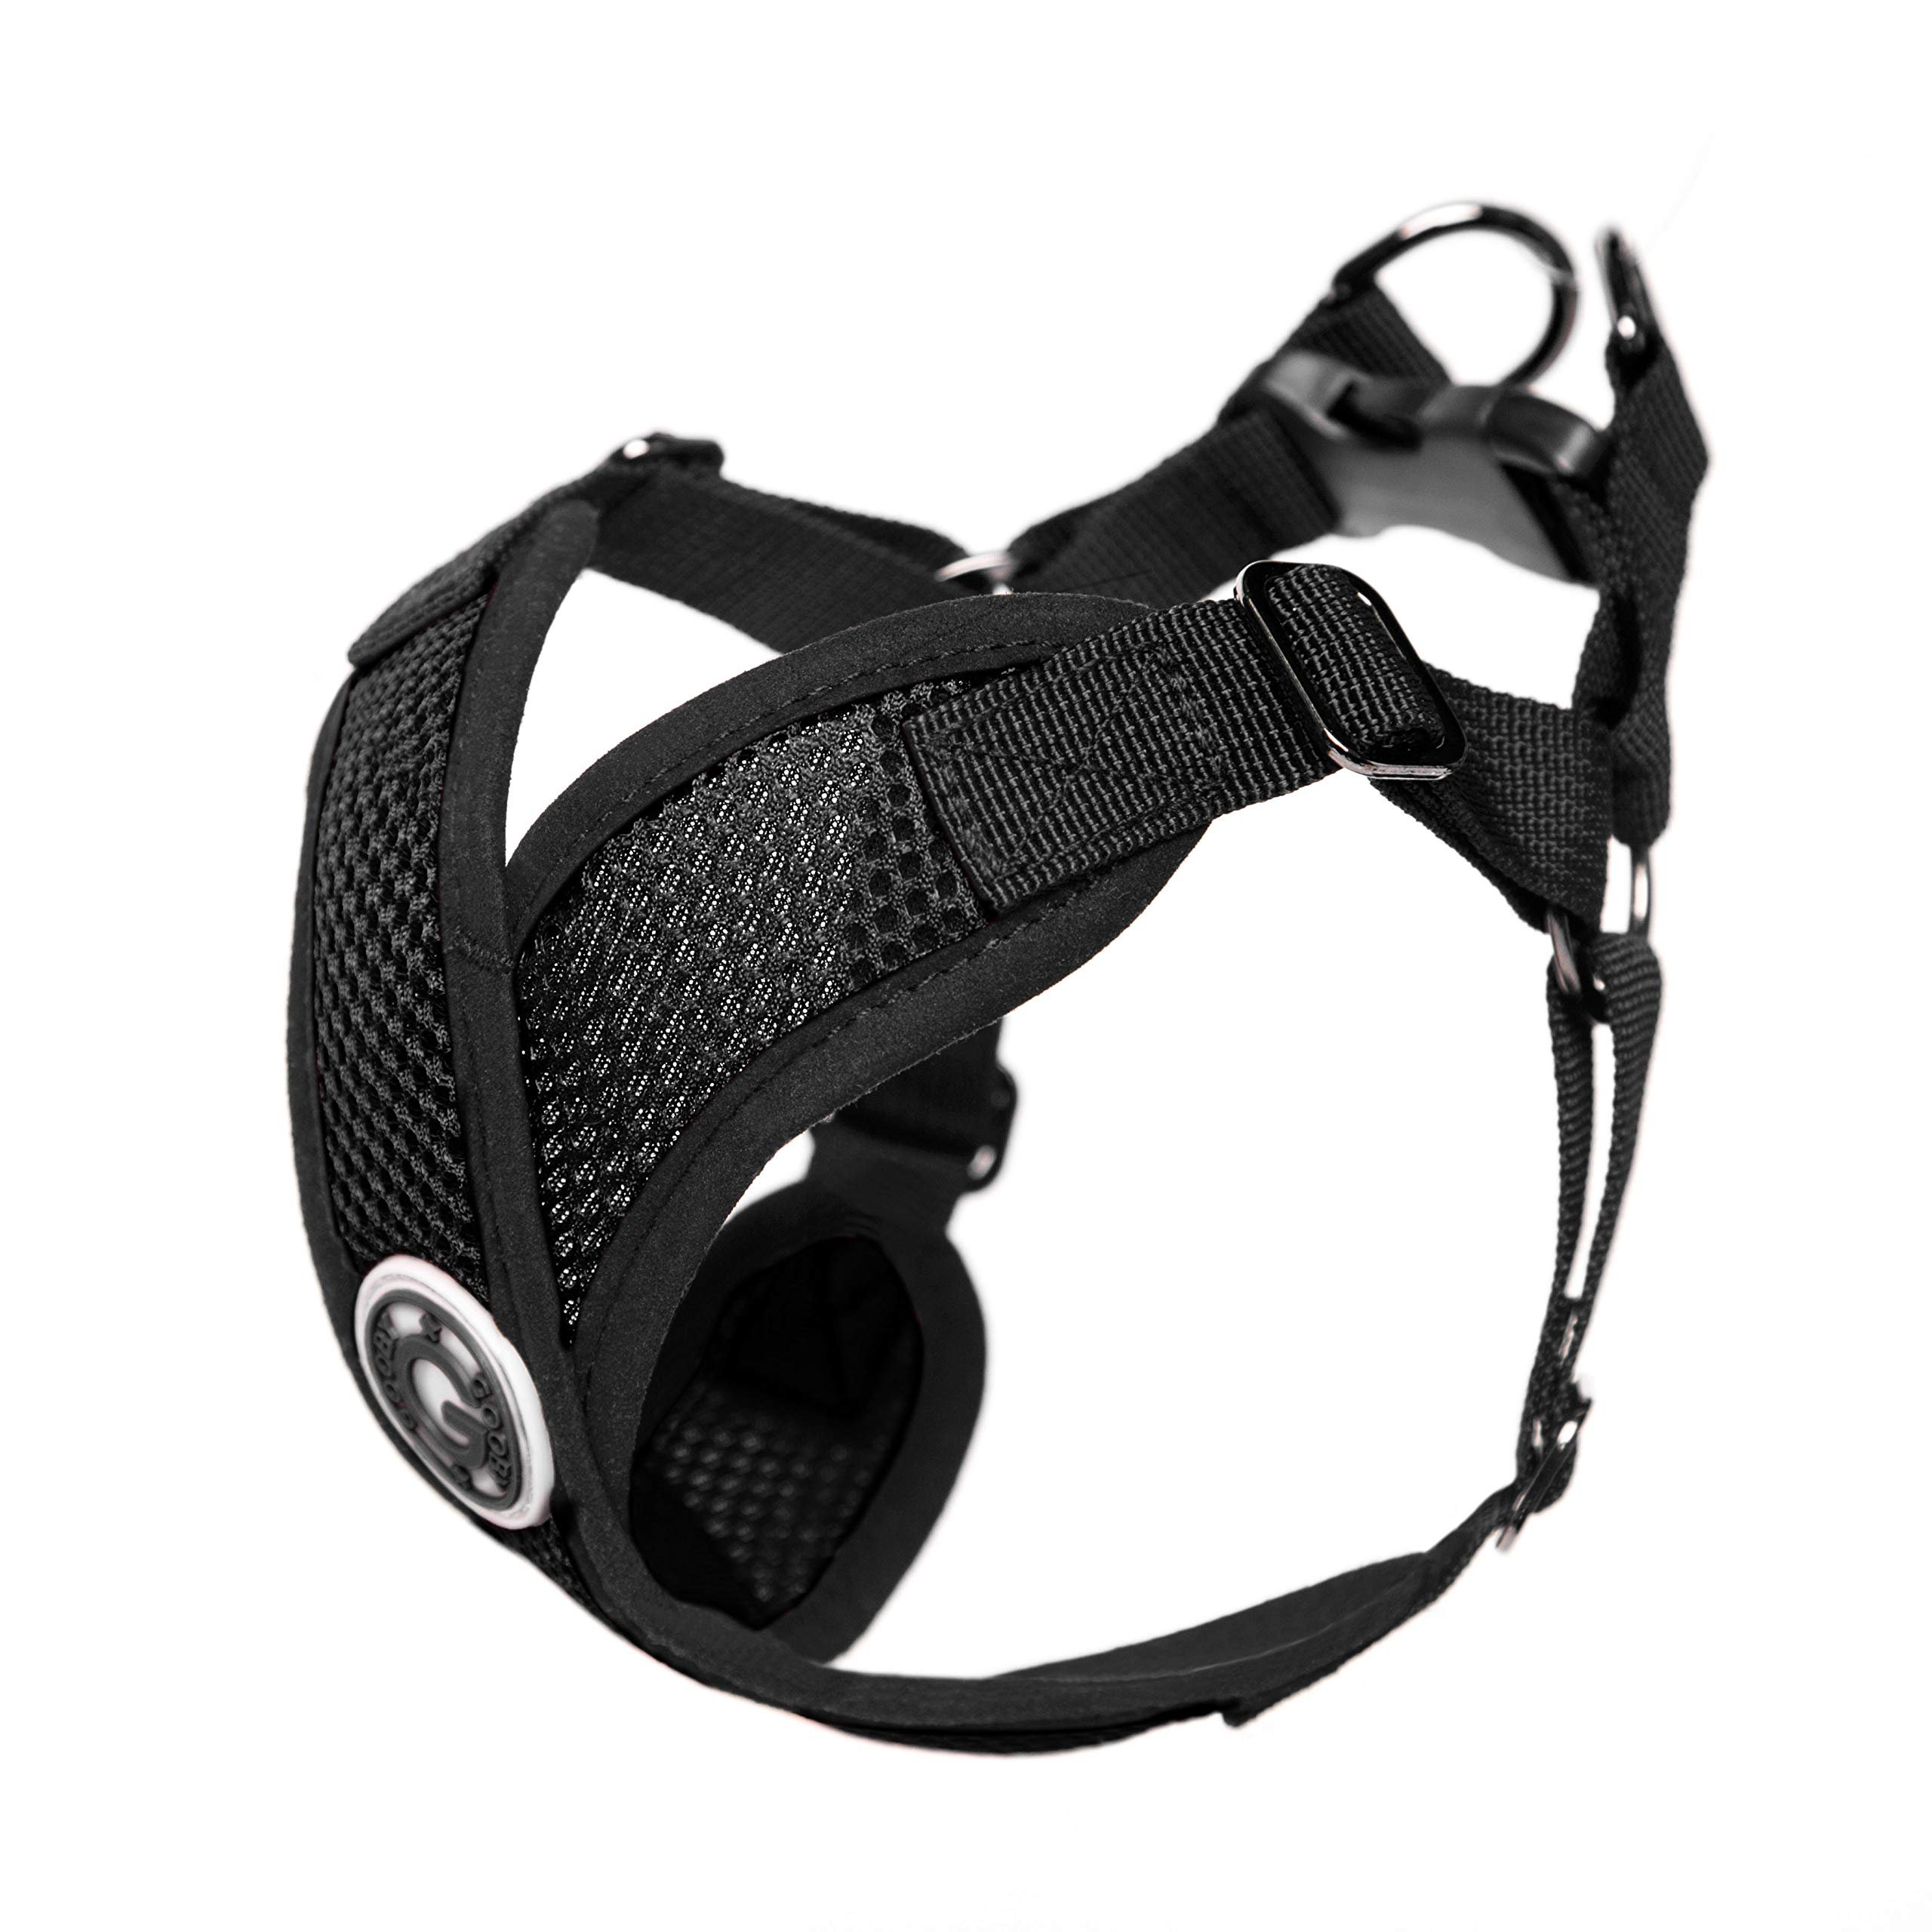 Gooby - Comfort X Step-in Harness, Choke Free Small Dog Harness with Micro Suede Trimming and Patented X Frame, Black, Medium